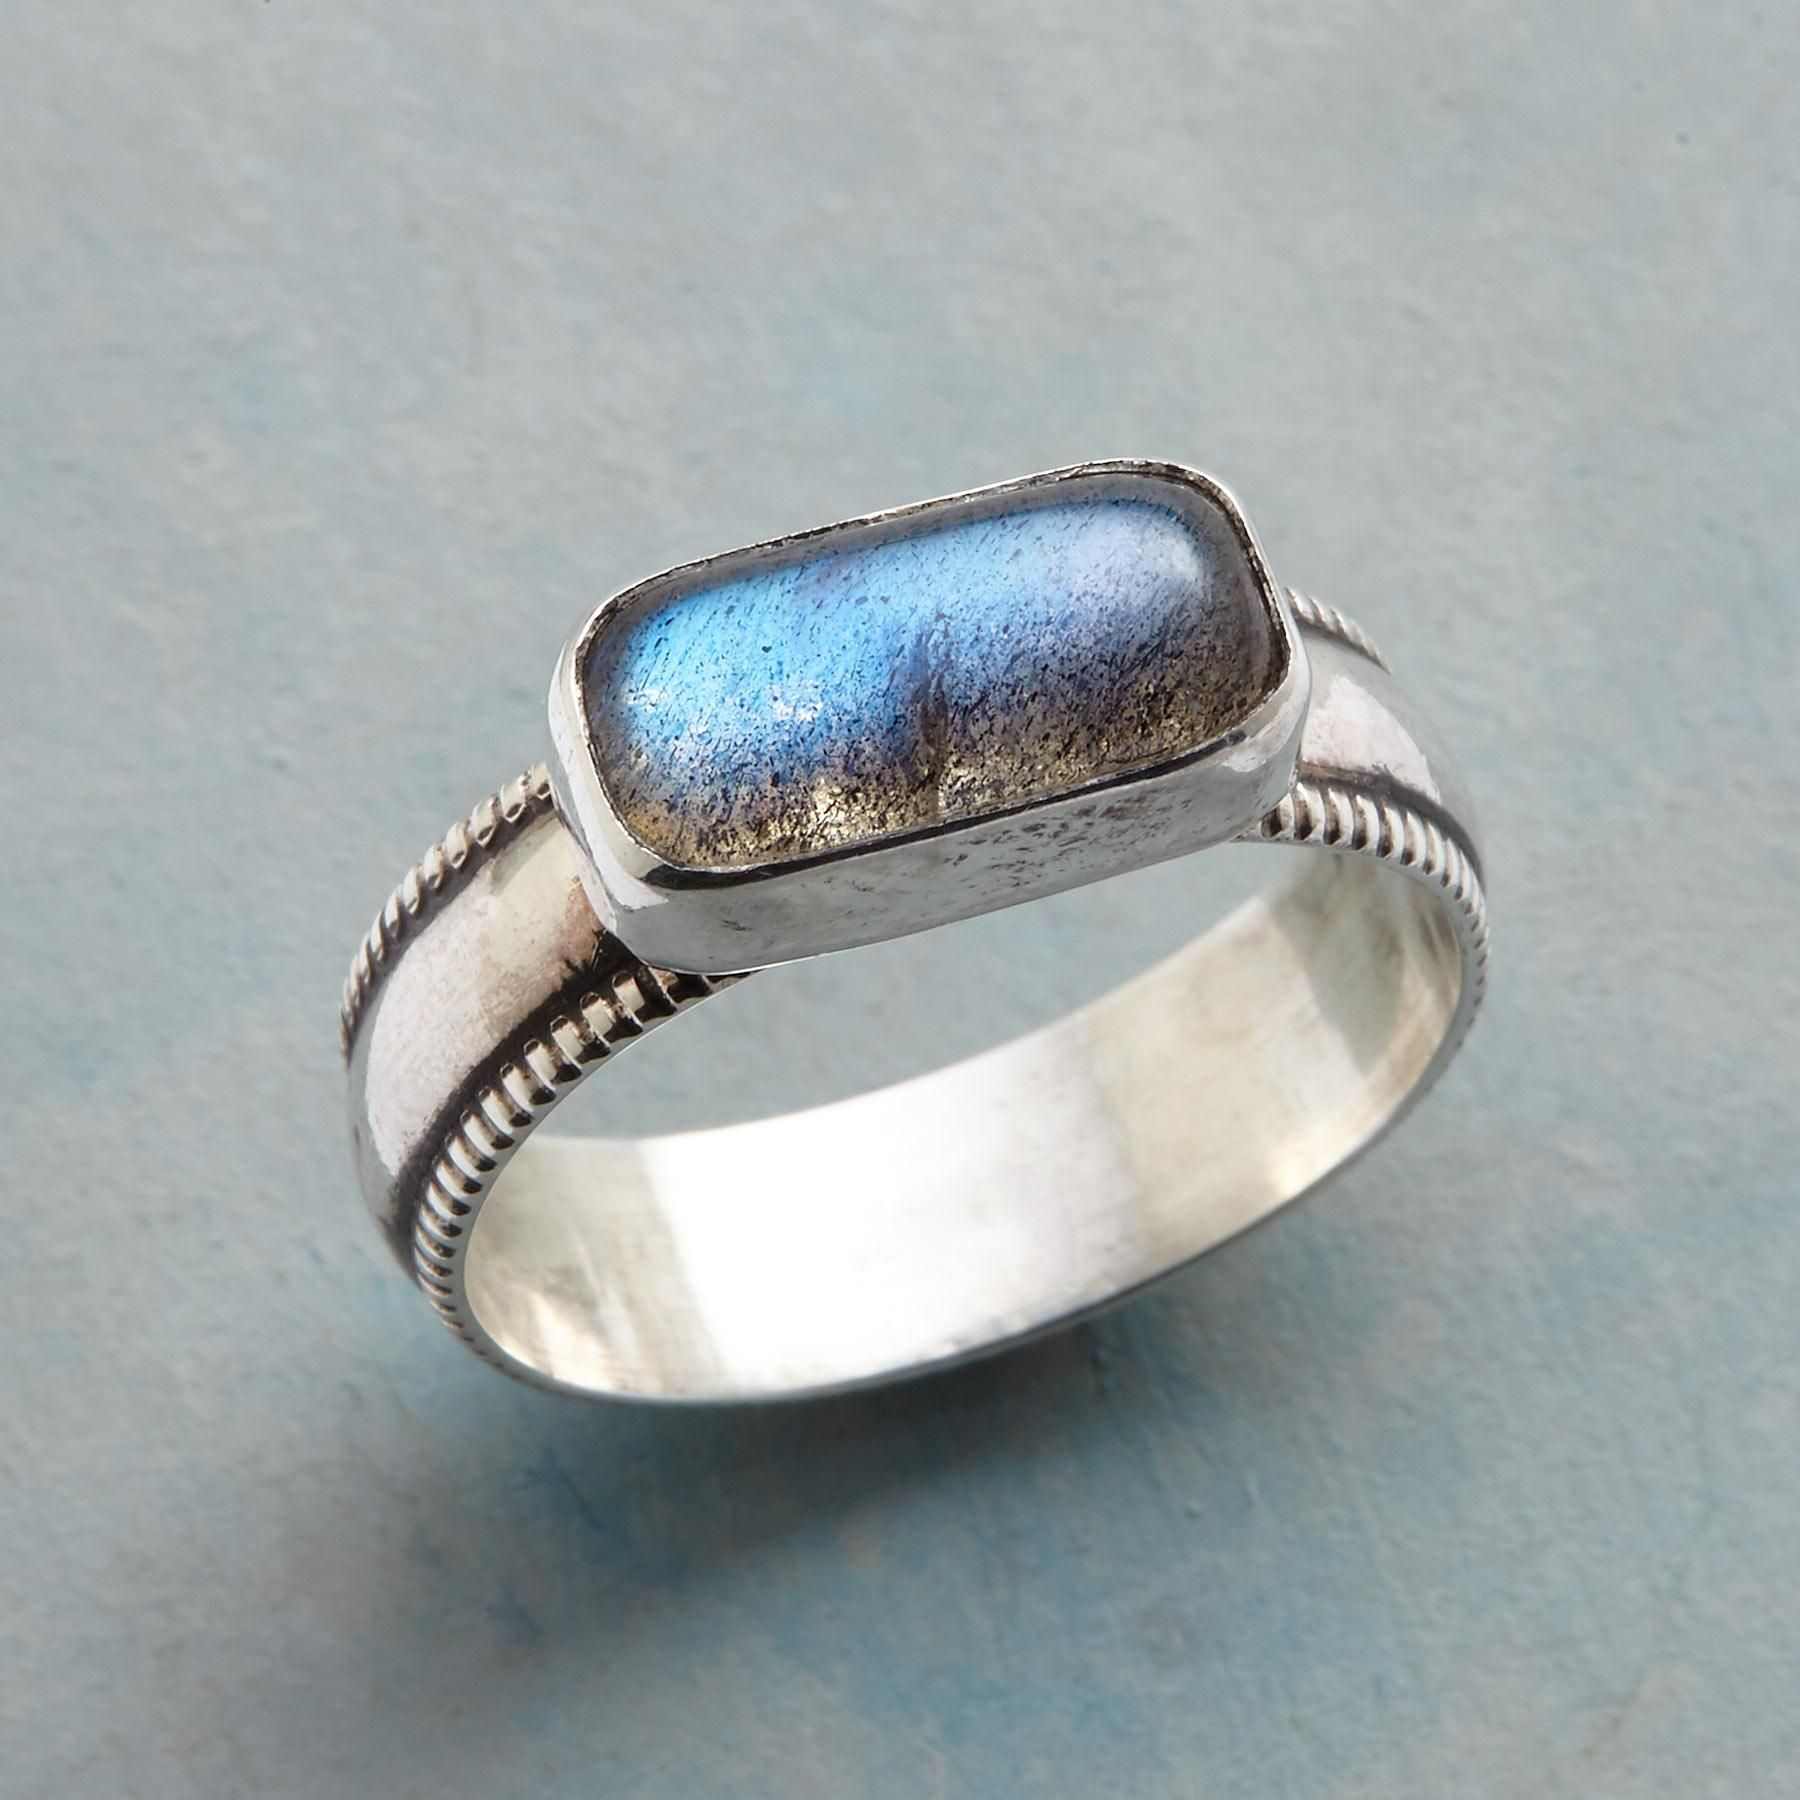 solid sterling silver ring Gifts for her Gemstone and silver ring.Labradorite and sterling silver ring Labradorite ring Ring Size 6.25